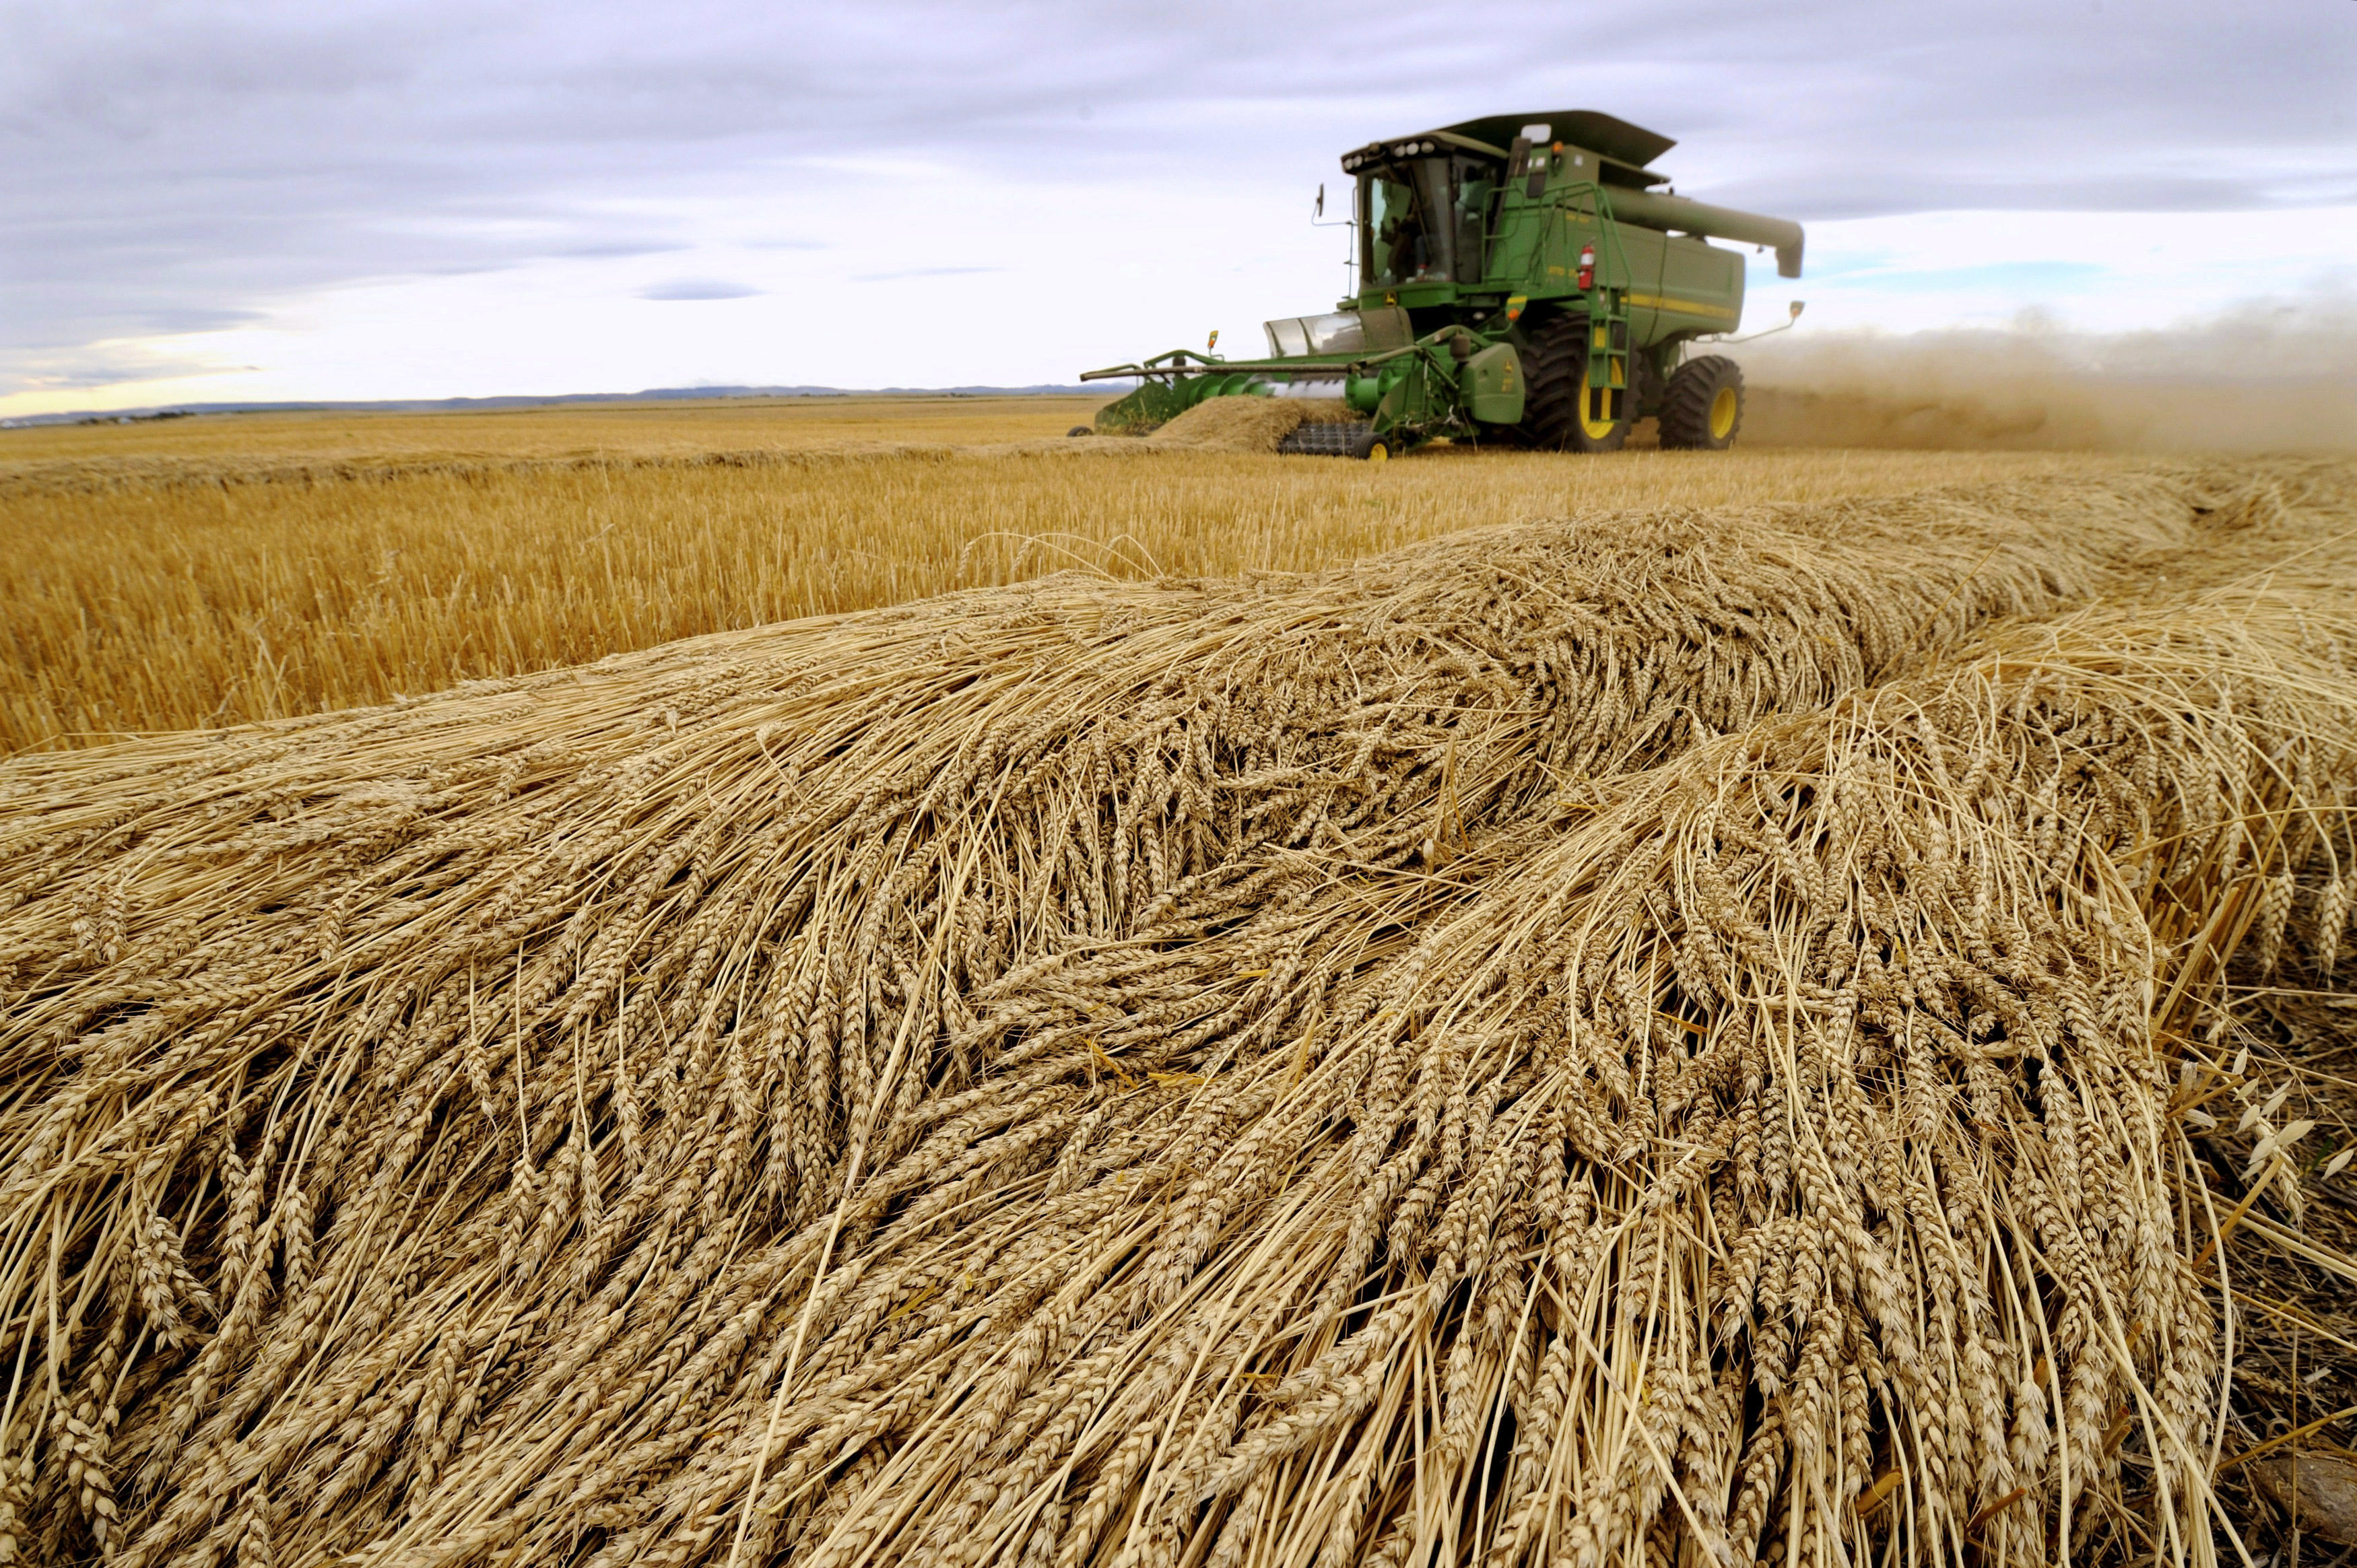 Tara Giles operates a combine as she harvests wheat on a 160-acre field located south of High River, Alberta, September 28, 2013. Alberta farmers have completed 71 percent of the harvest, the government of the Western Canadian province said on Friday in its most recent crop report as of September 24. The harvest completion by crop: spring wheat 76 percent; durum 84 percent; barley 74 percent; canola 60 percent. REUTERS/Mike Sturk (CANADA - Tags: AGRICULTURE BUSINESS COMMODITIES FOOD TPX IMAGES OF THE DAY) - GM1E99T0VNI01